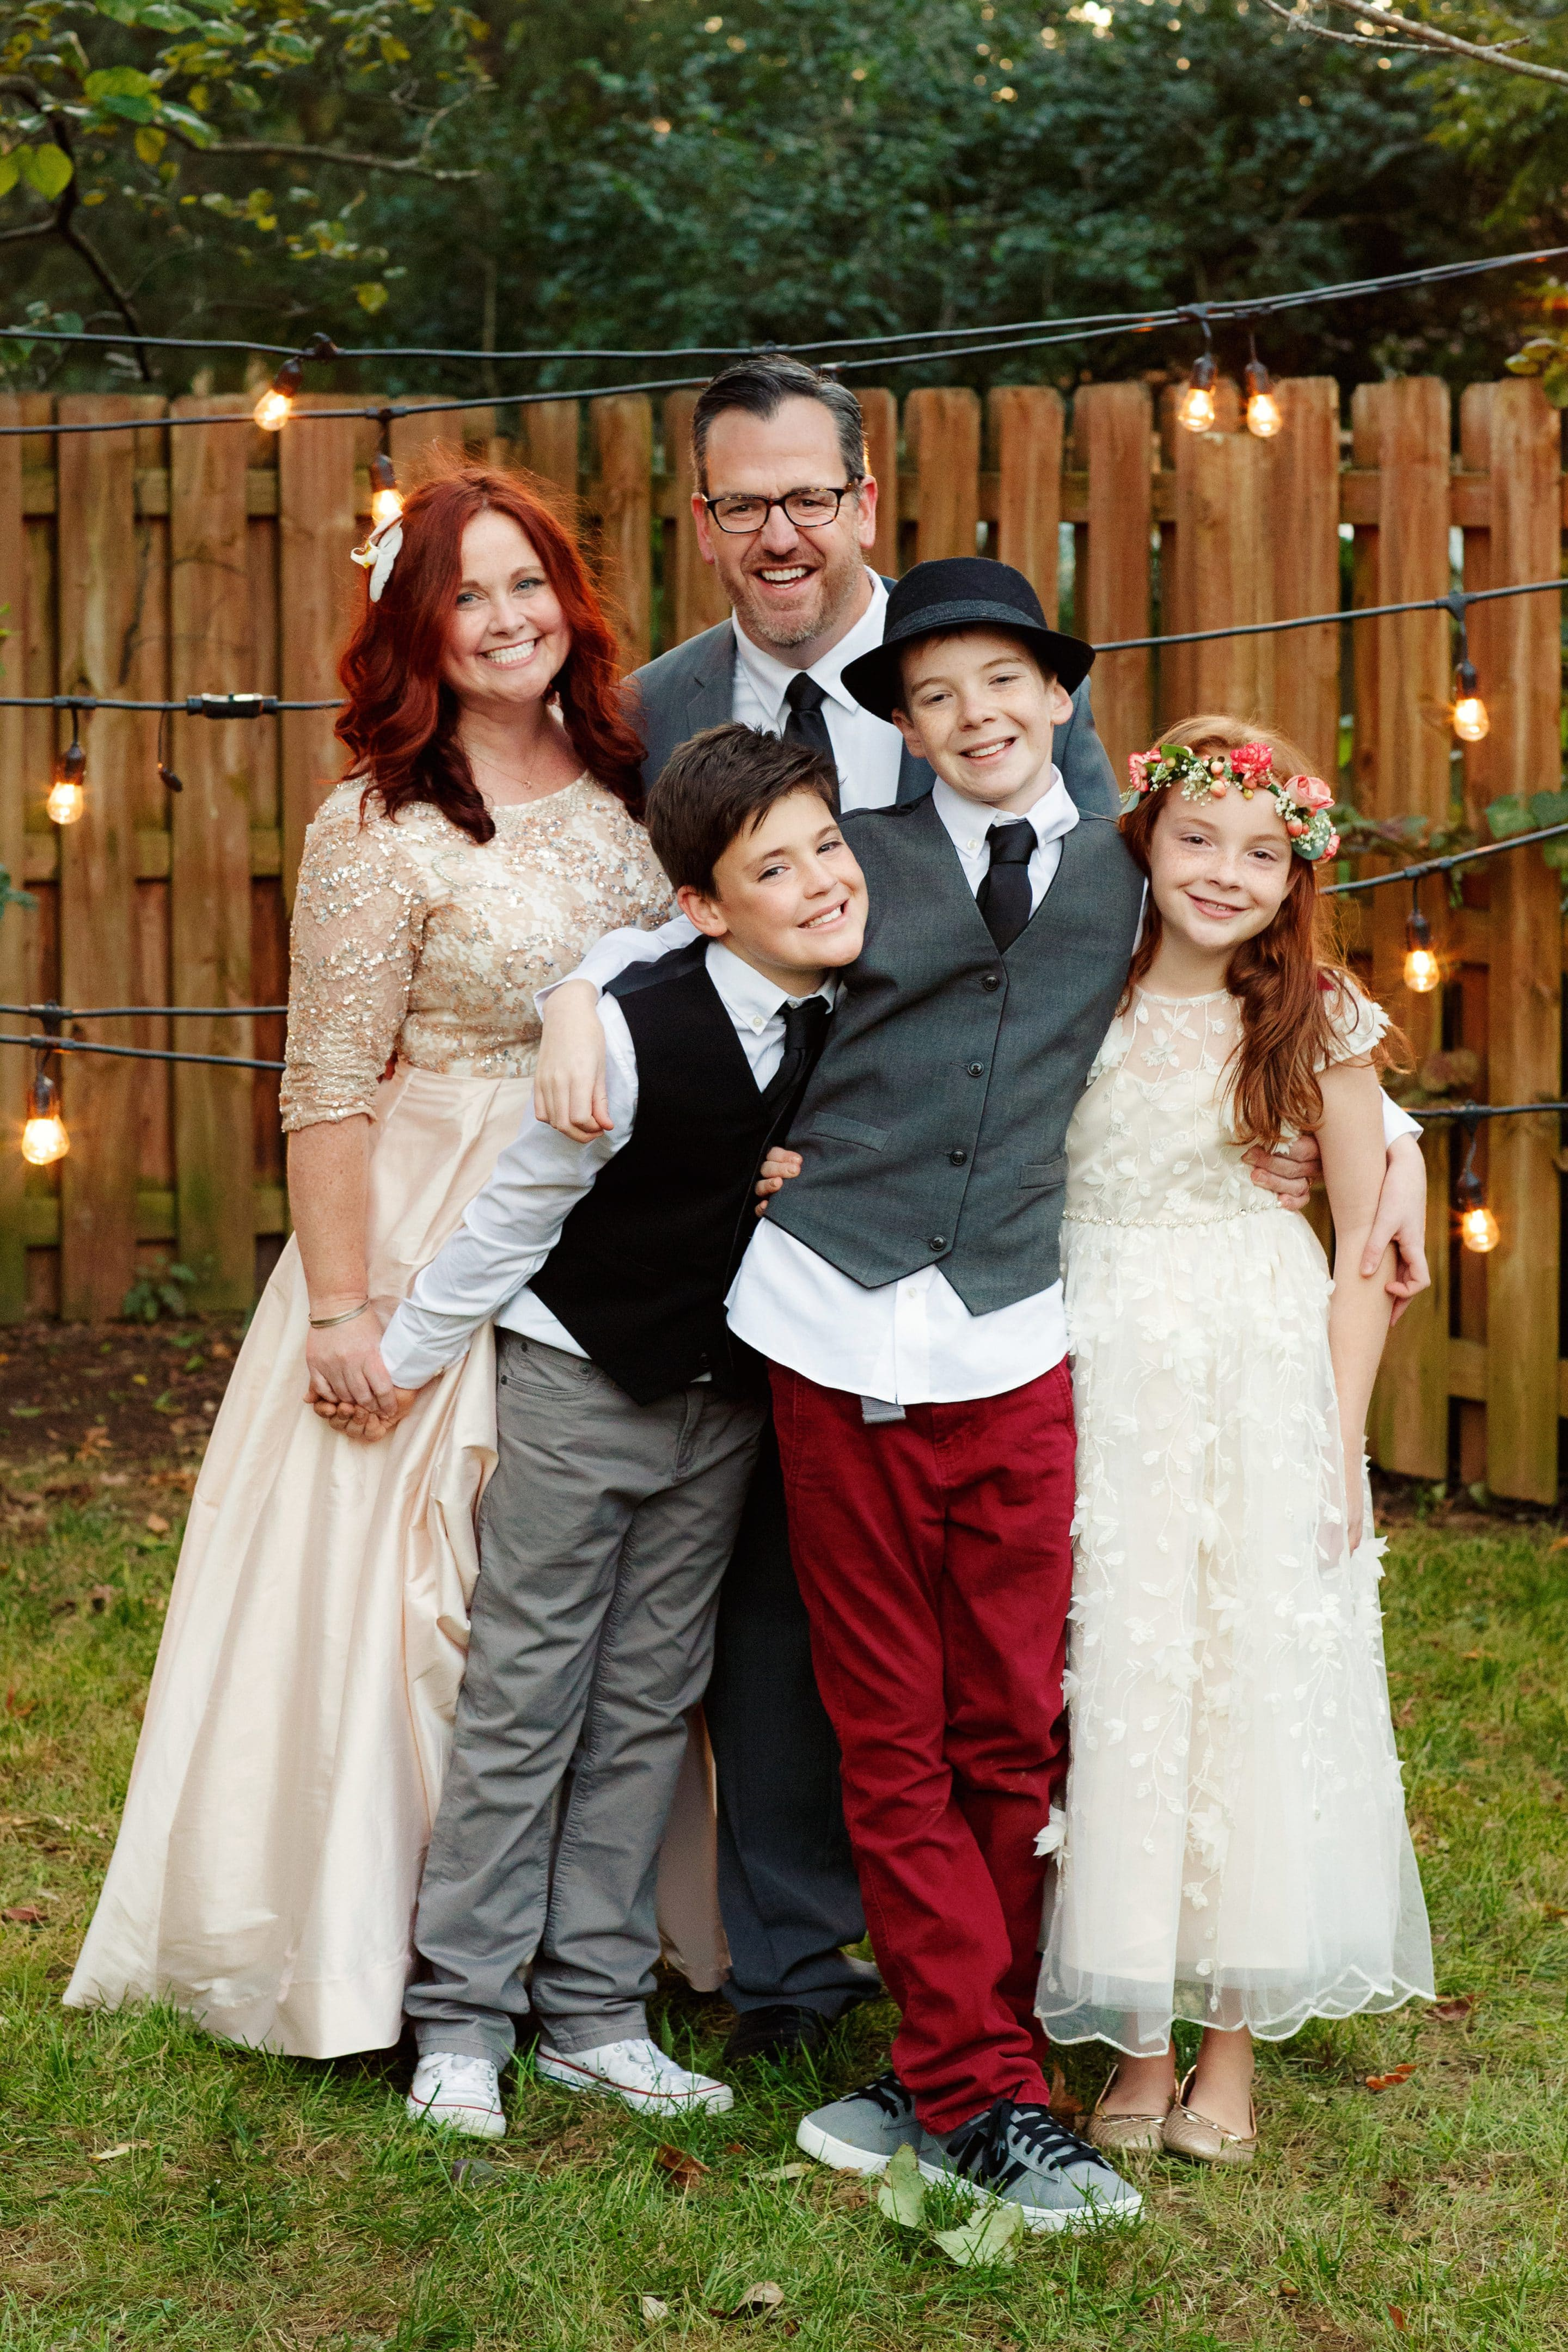 Bobbi and her family at her wedding